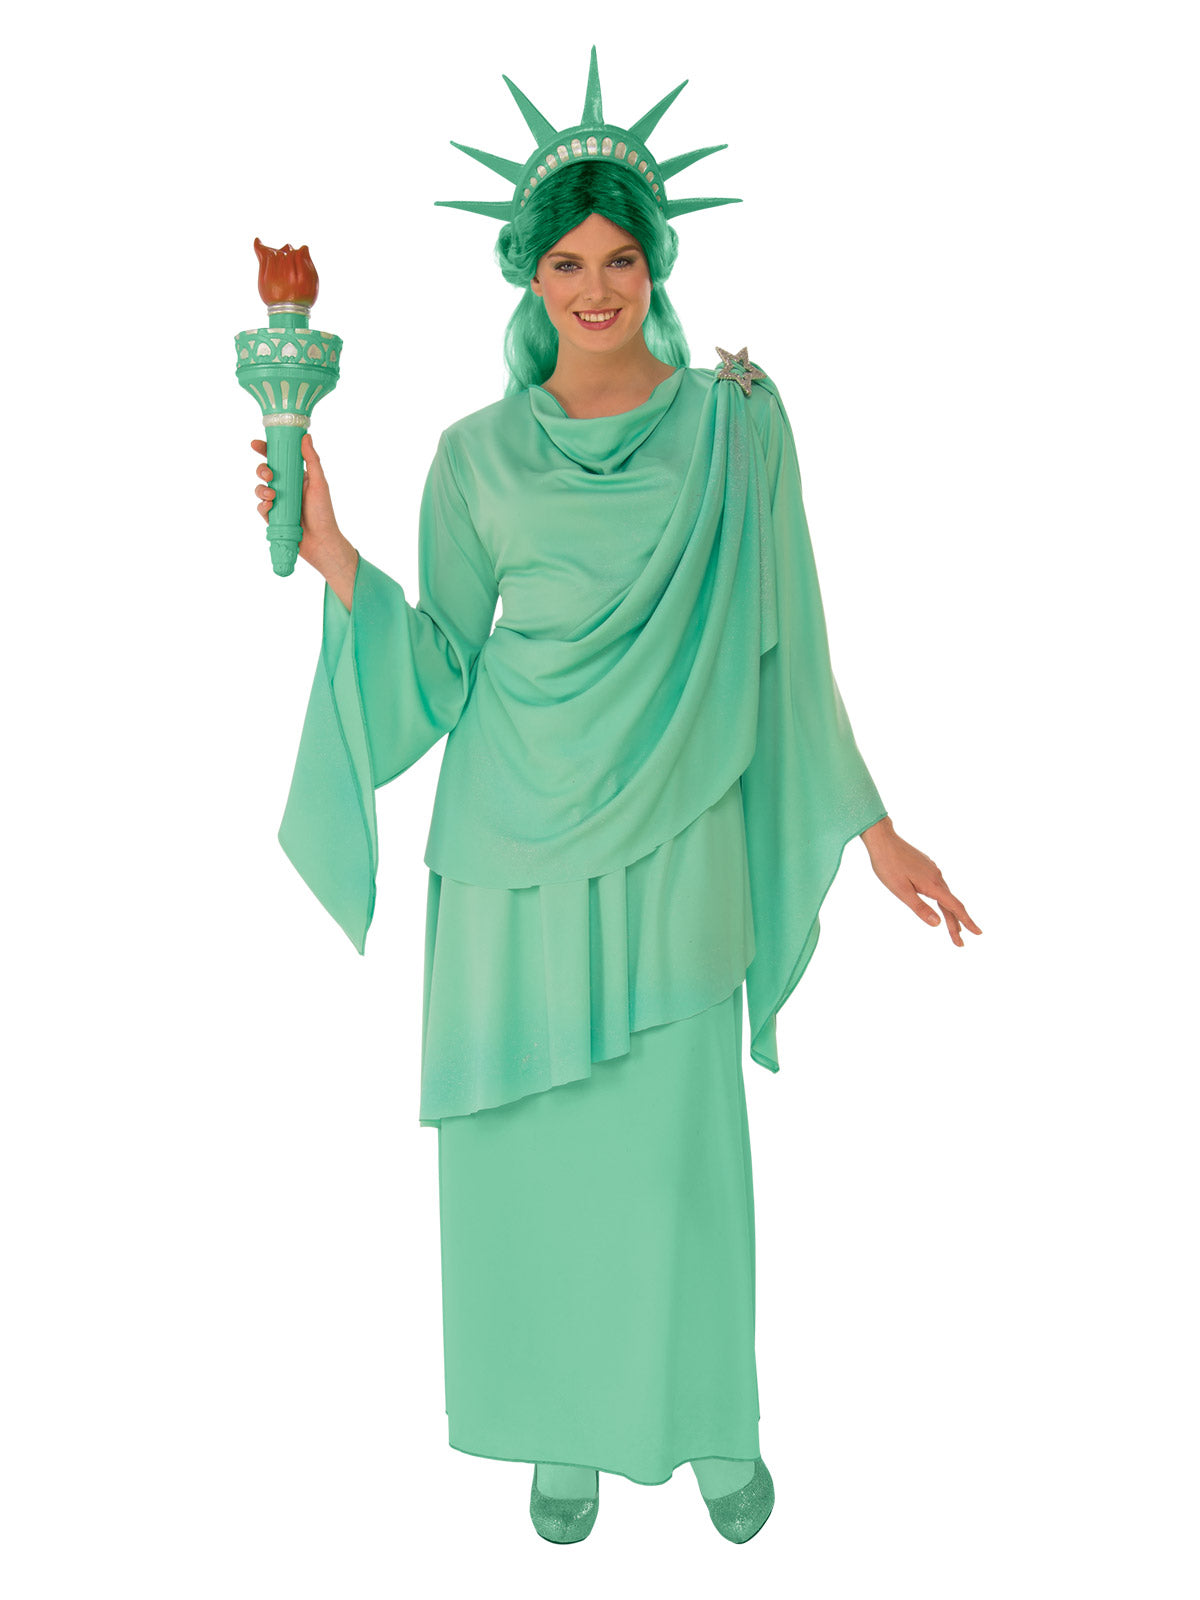 Statue of Liberty Costume - Buy Online Only